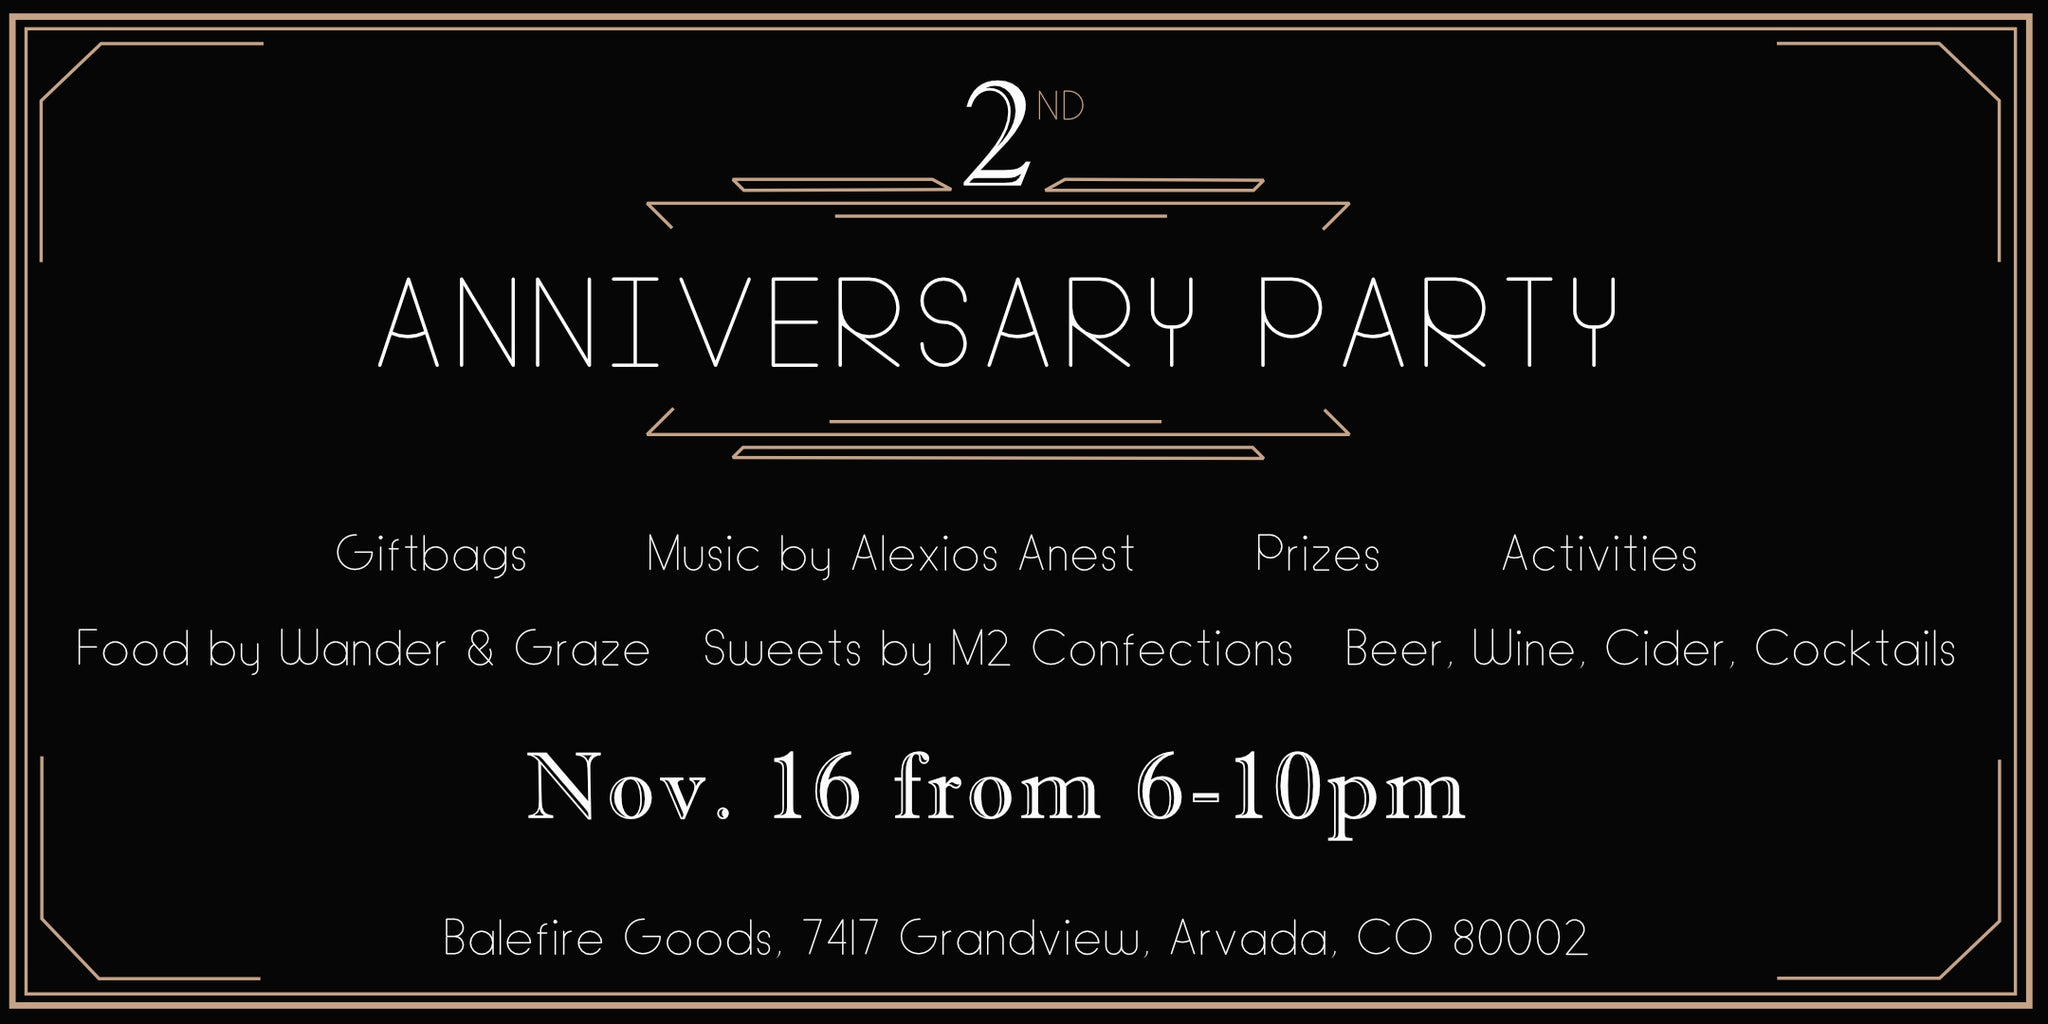 2nd Anniversary Party!